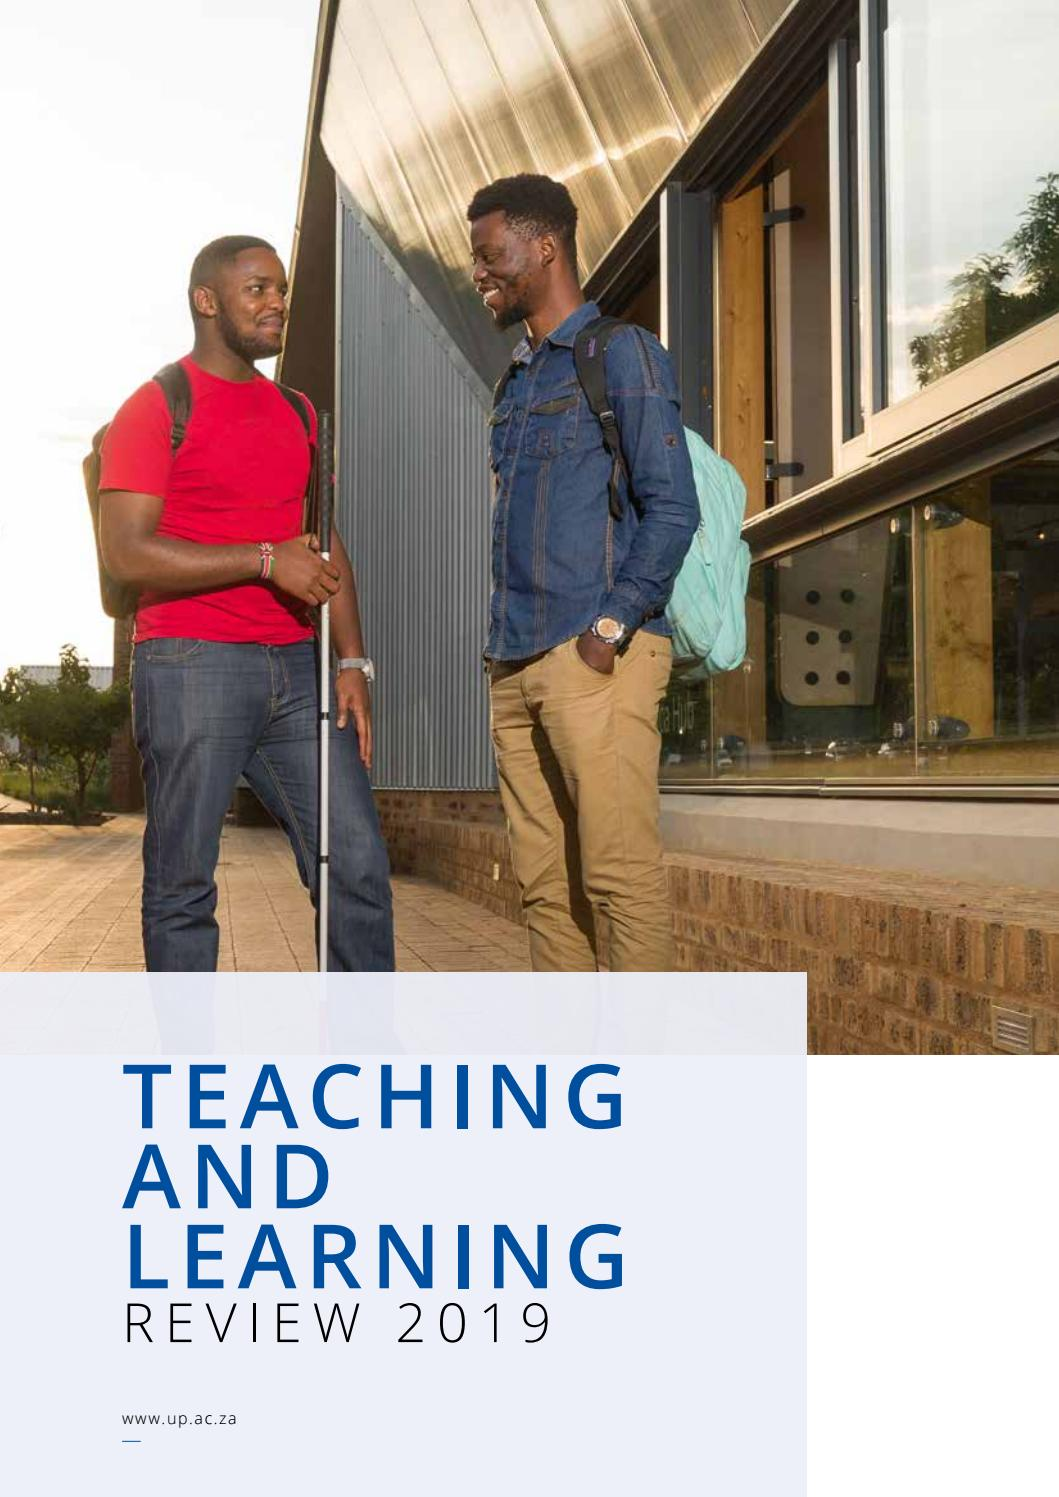 My hot ass teacher Up Teaching And Learning Review 2019 By University Of Pretoria Issuu